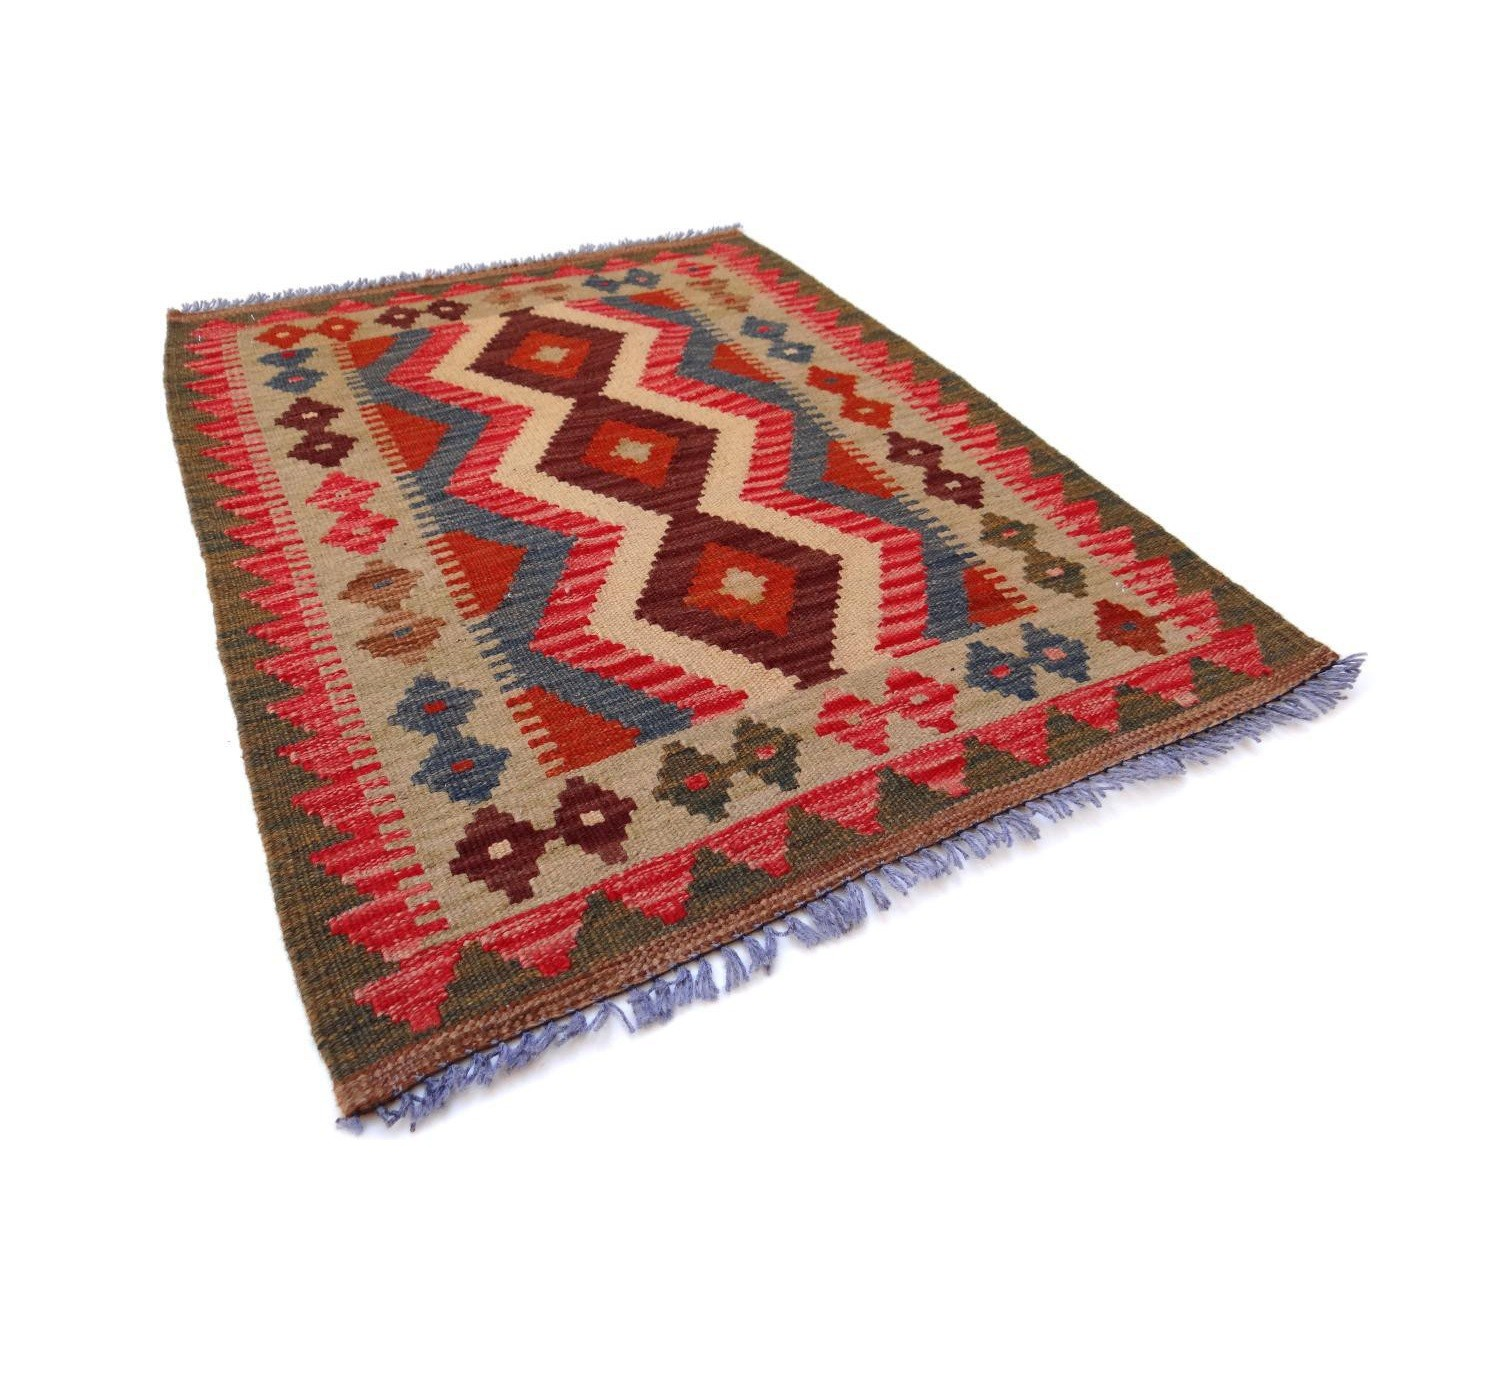 Kilim Afghan Traditionnel 75 x 60 cm